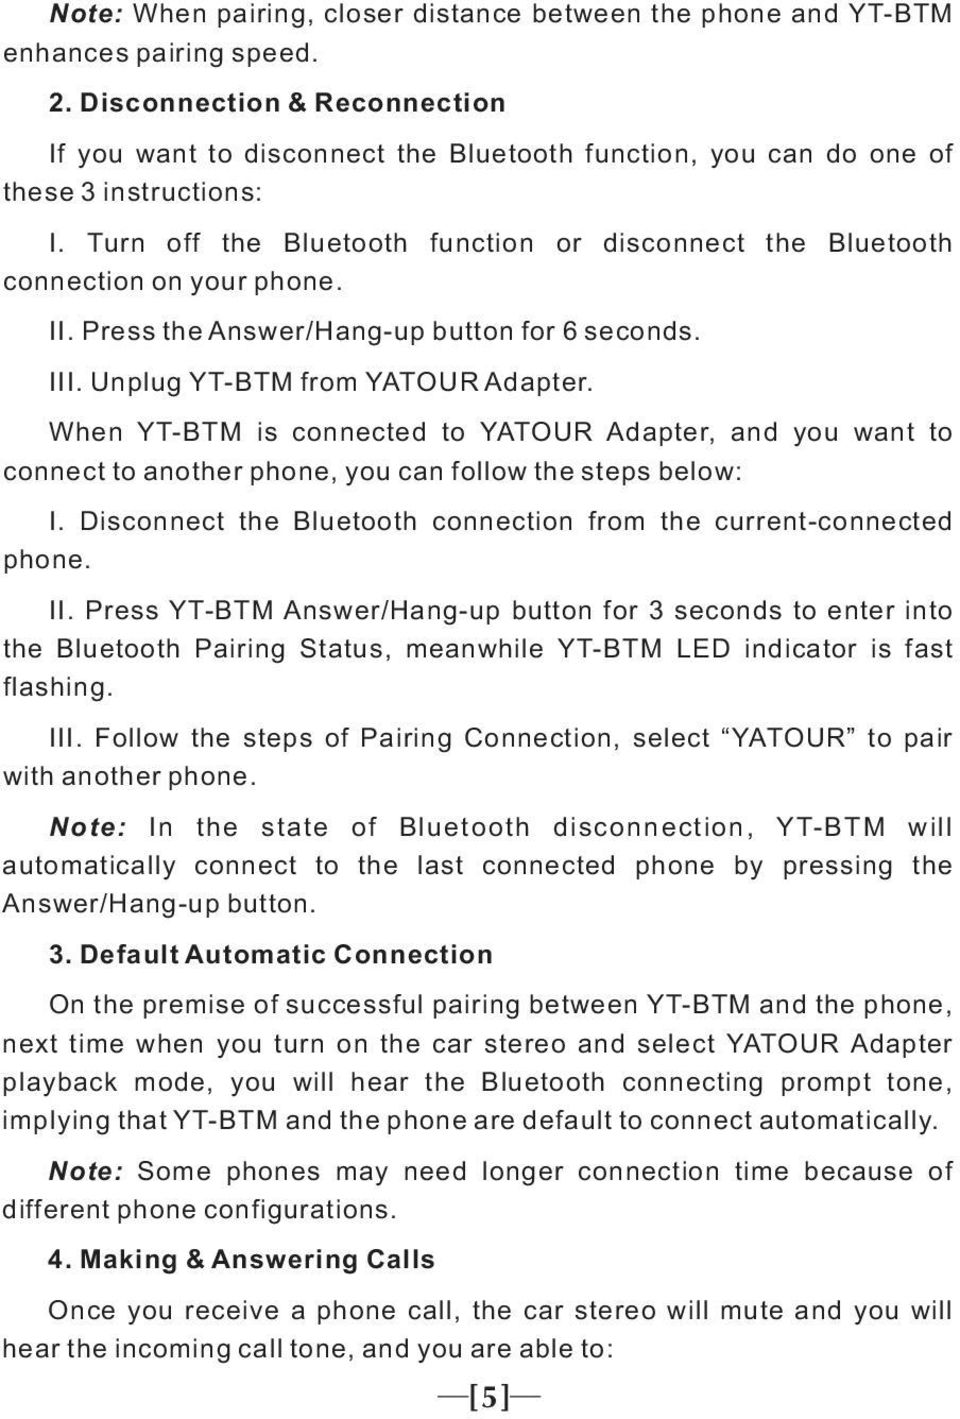 Turn off the Bluetooth function or disconnect the Bluetooth connection on your phone. II. Press the Answer/Hang-up button for 6 seconds. III. Unplug YT-BTM from YATOUR Adapter.